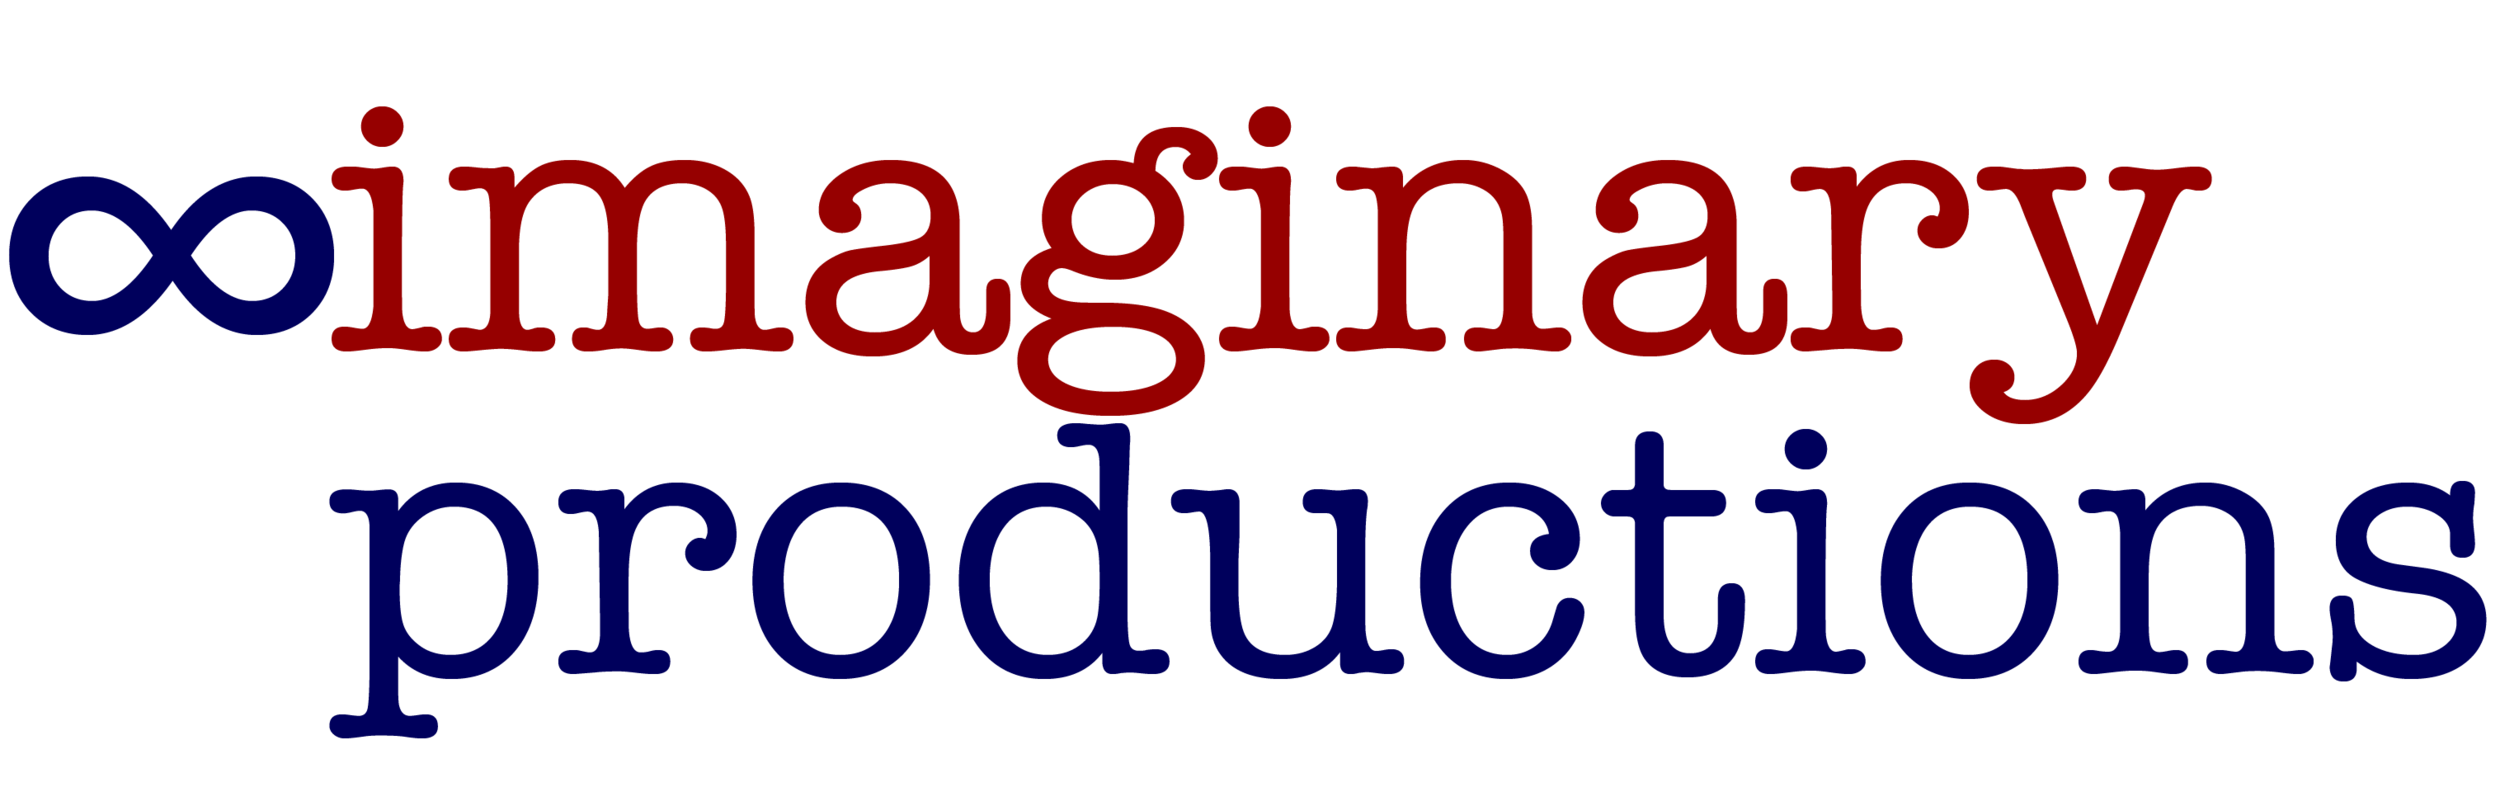 Imaginary Productions Name.png